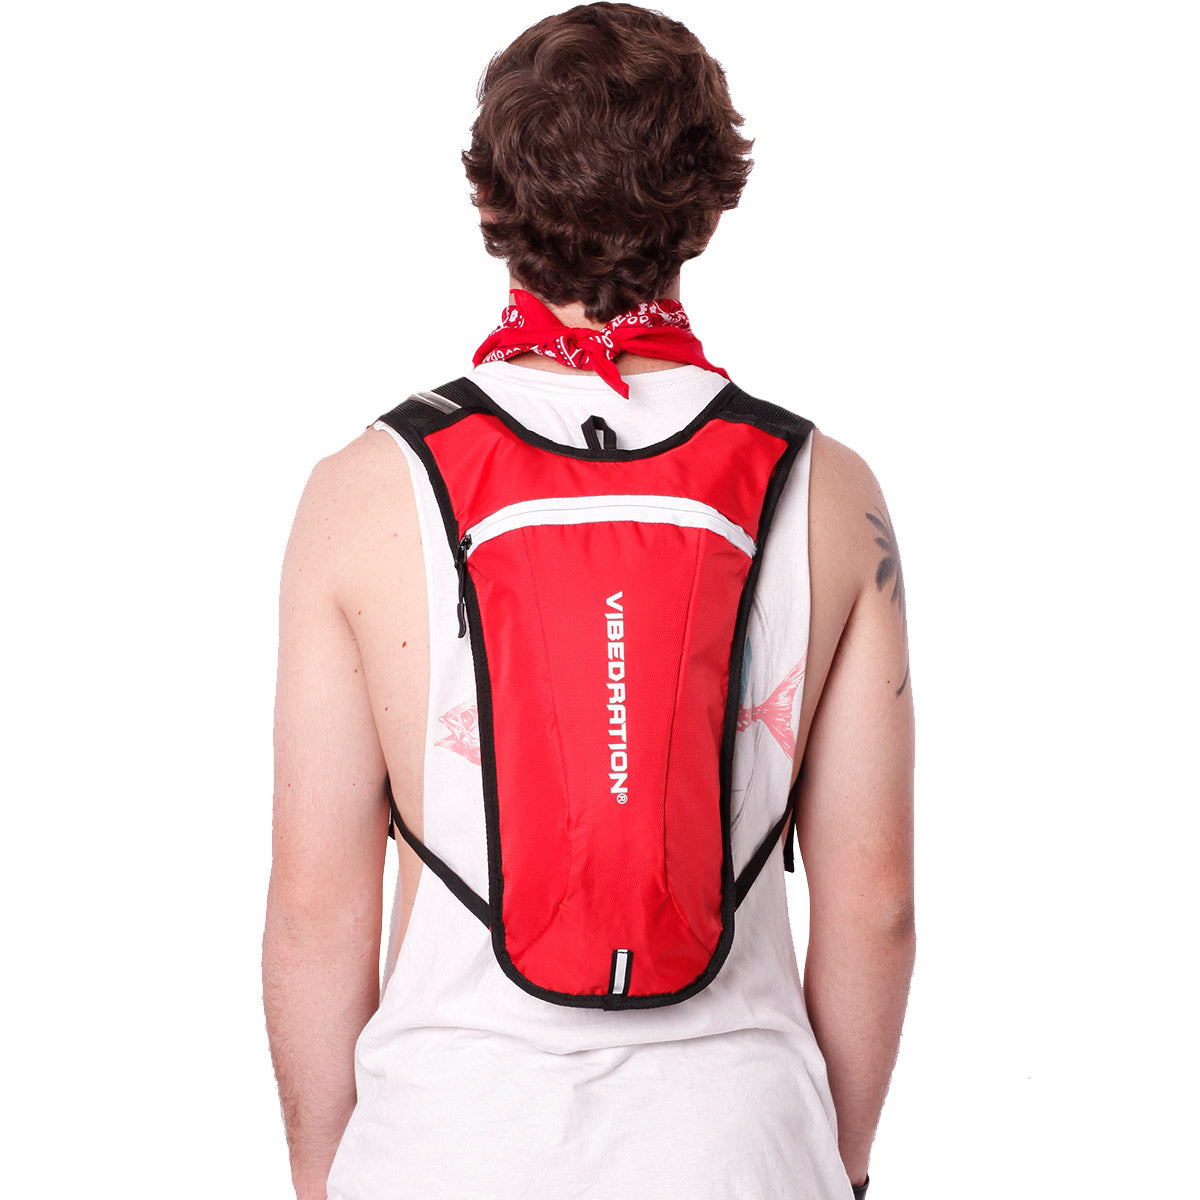 Back view of male wearing red and white hydration pack.